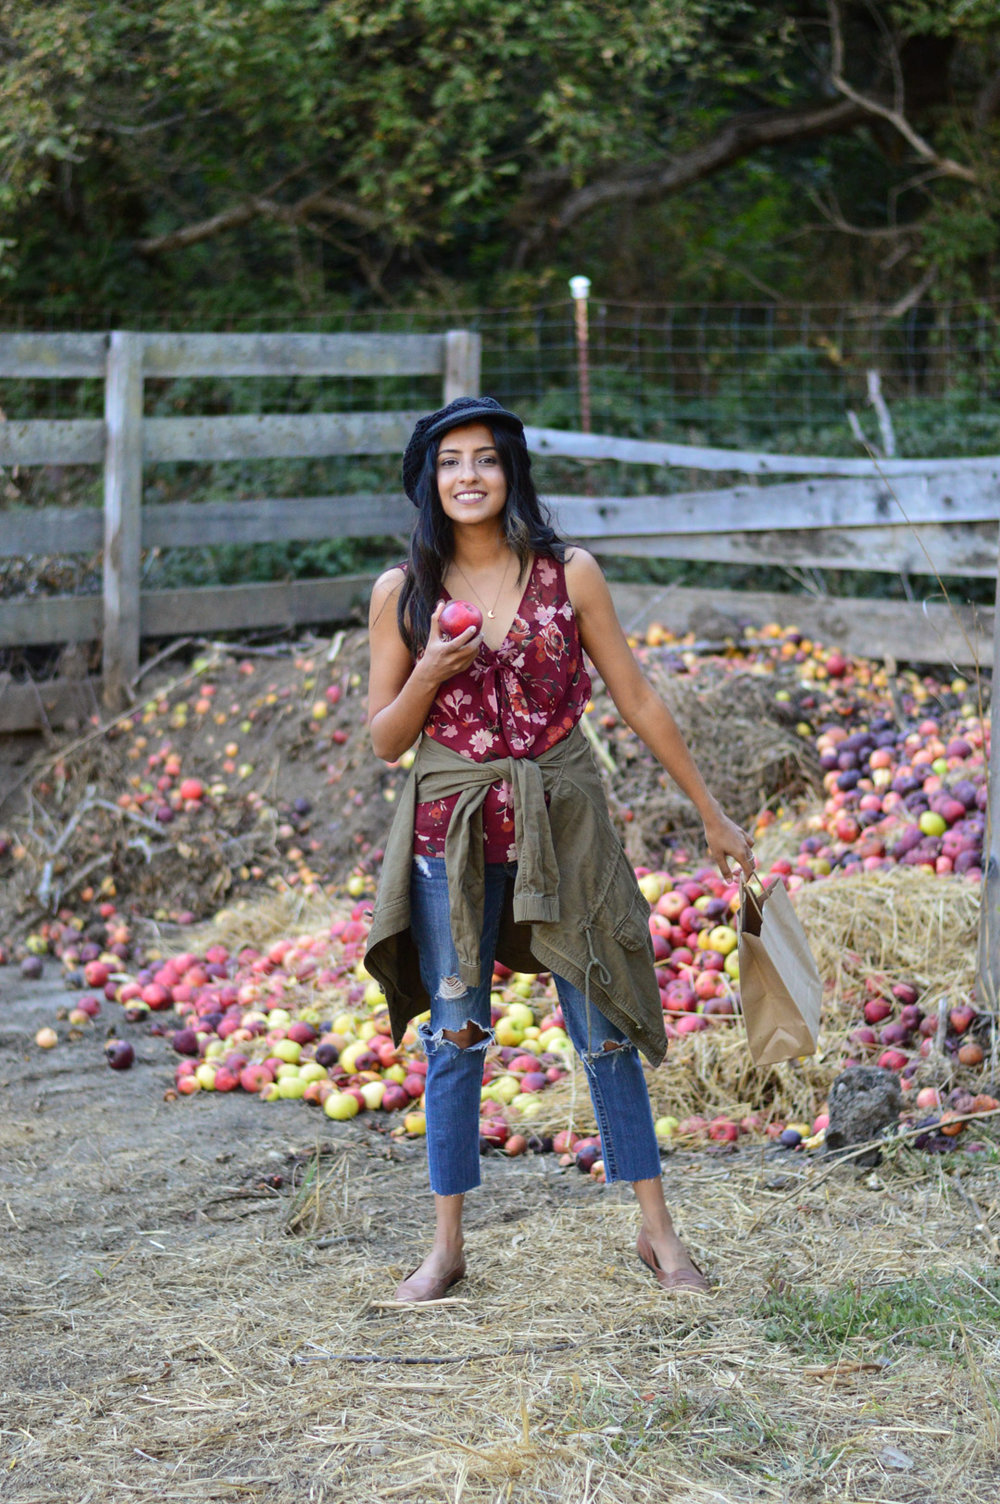 apple-picking-fall-florals-utility-jacket-california-style 12